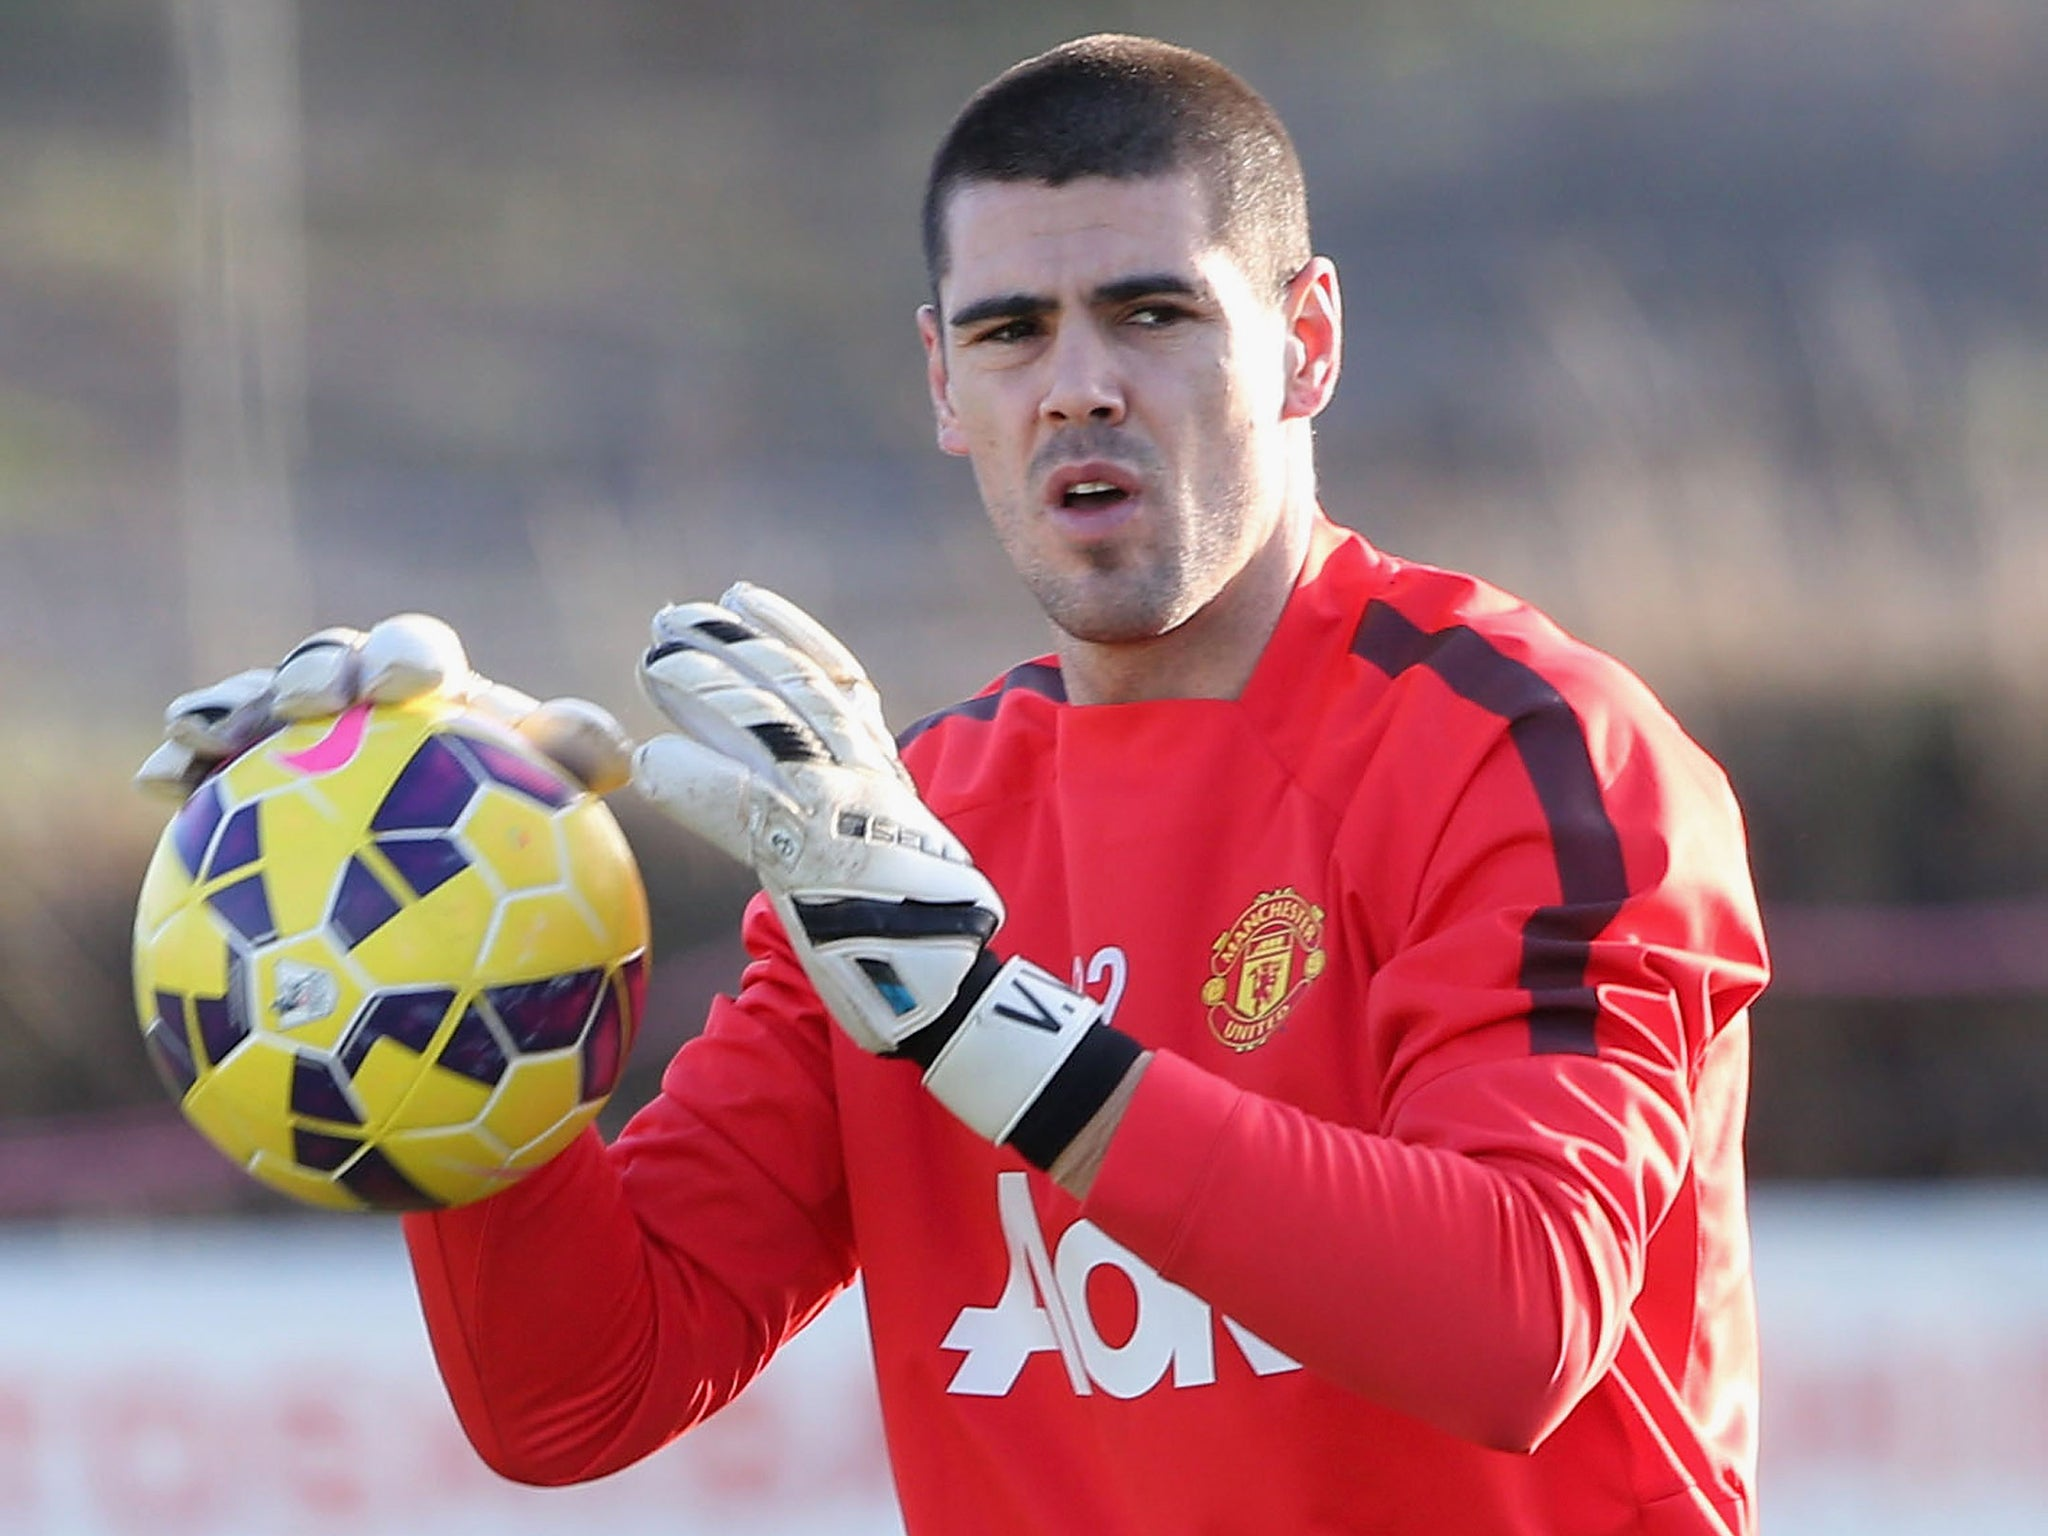 Victor Valdes debut Cambridge vs Manchester United set to be